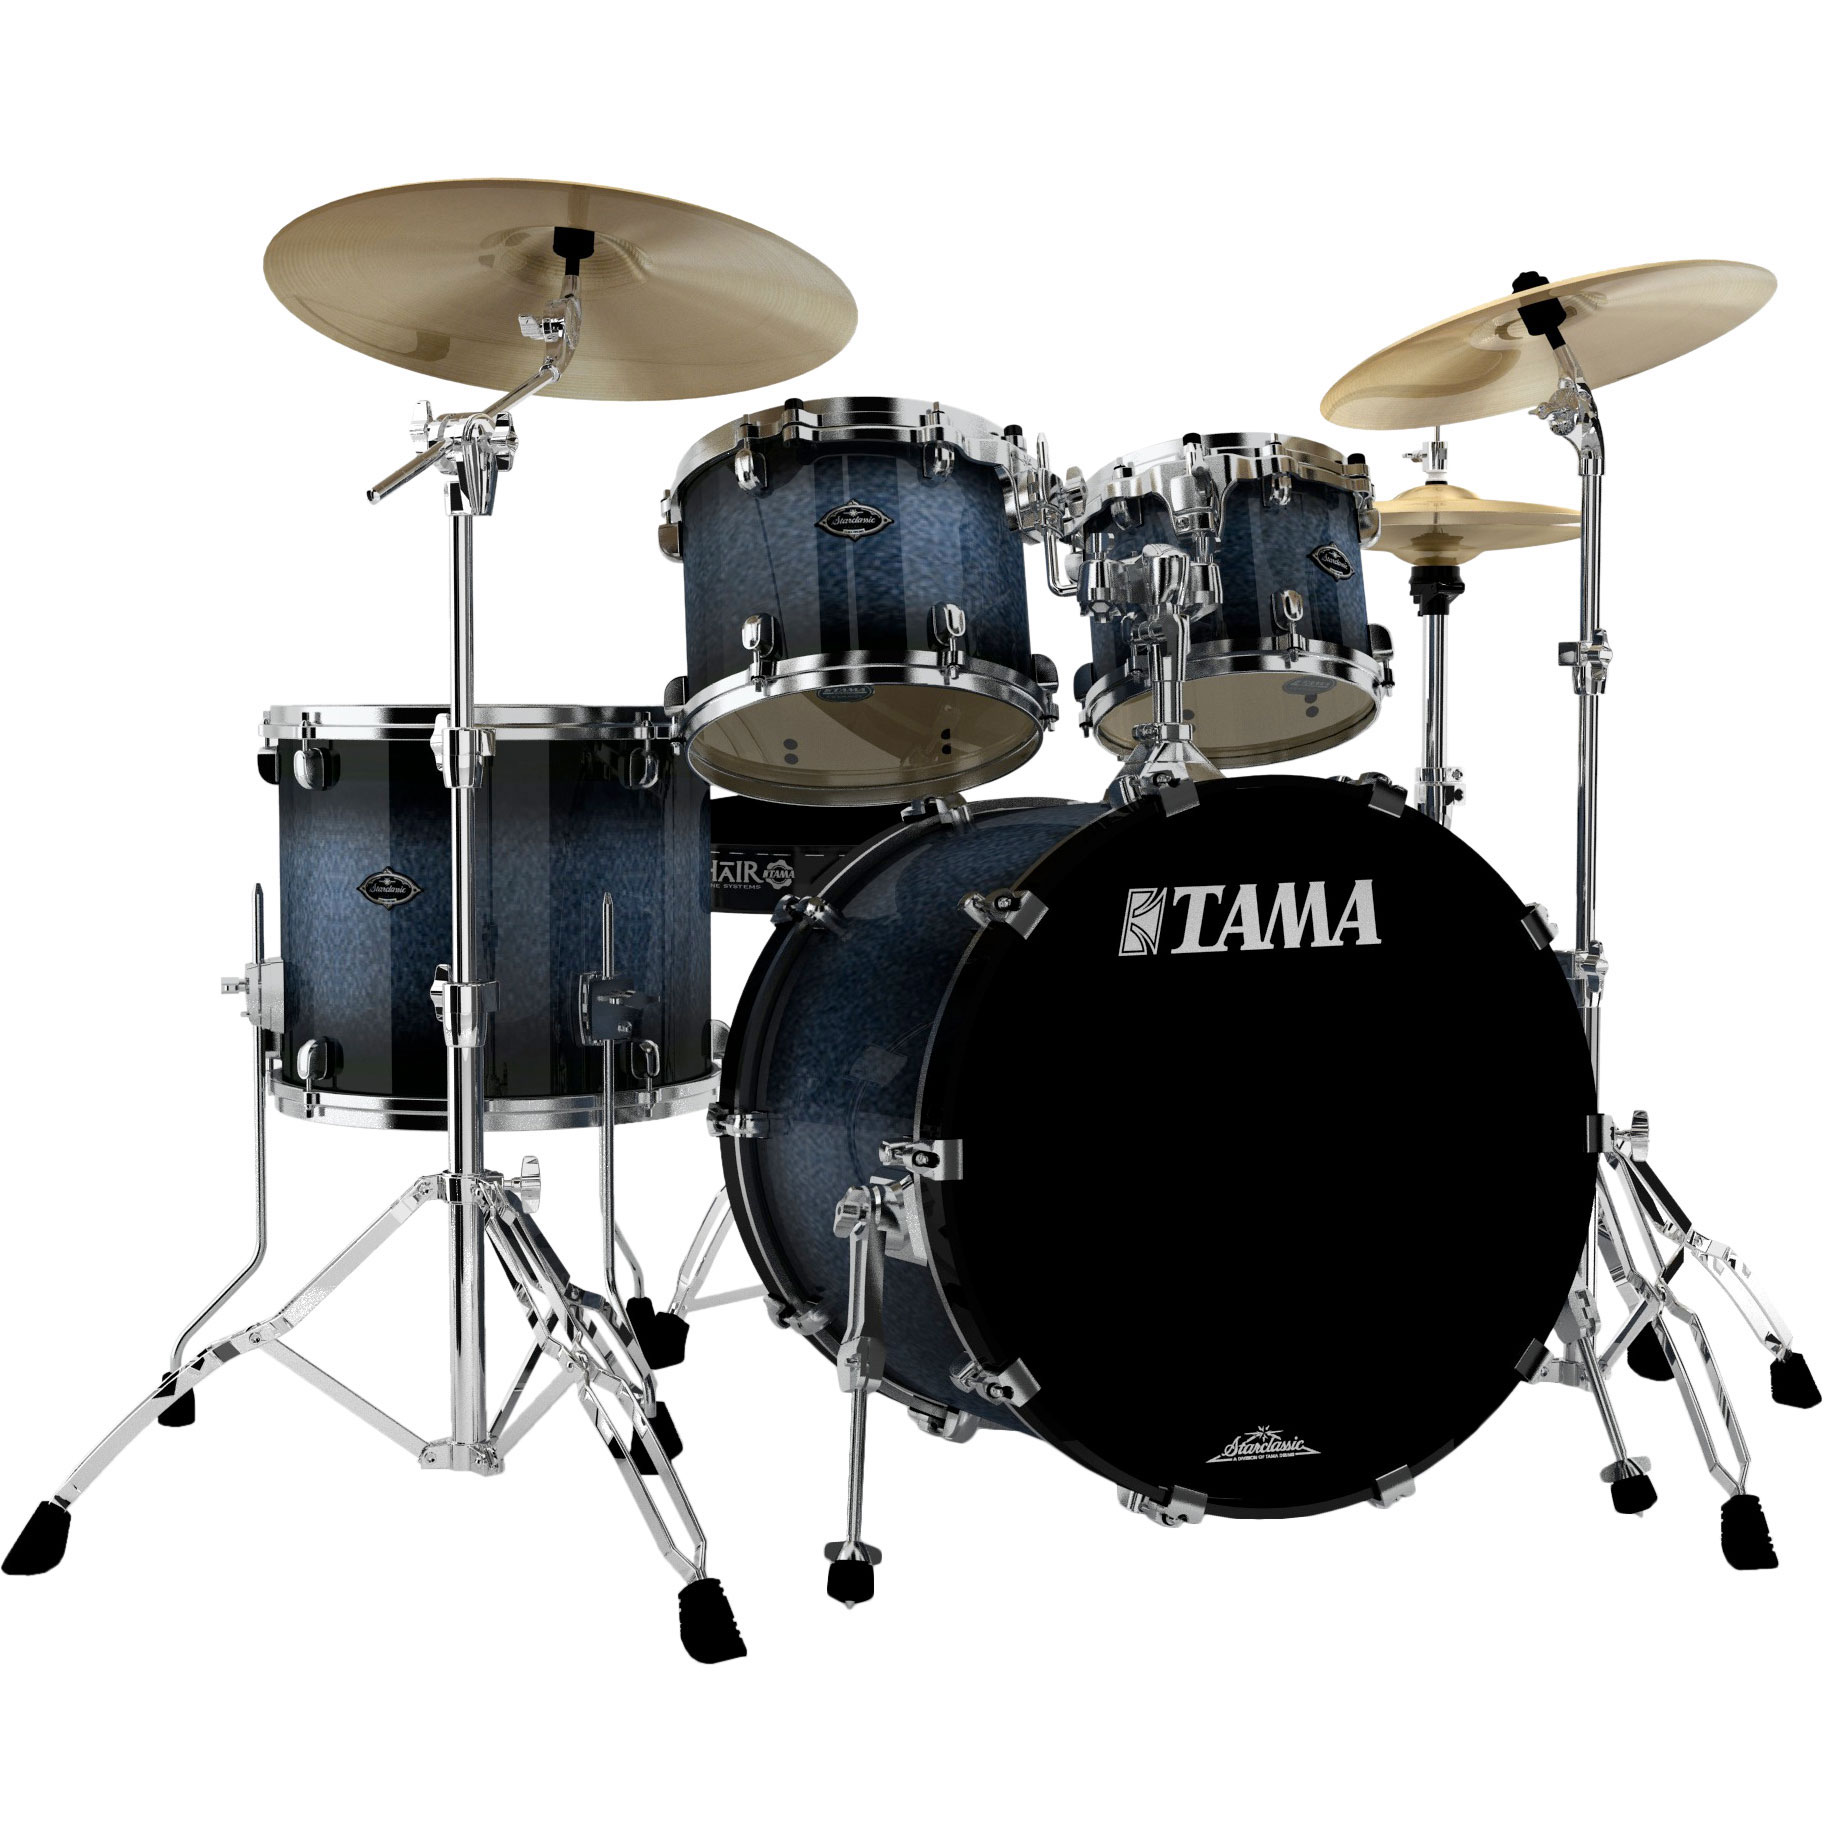 "Tama Starclassic Performer B/B 4-Piece Drum Set Shell Pack (22"" Bass, 10/12/16"" Toms)"